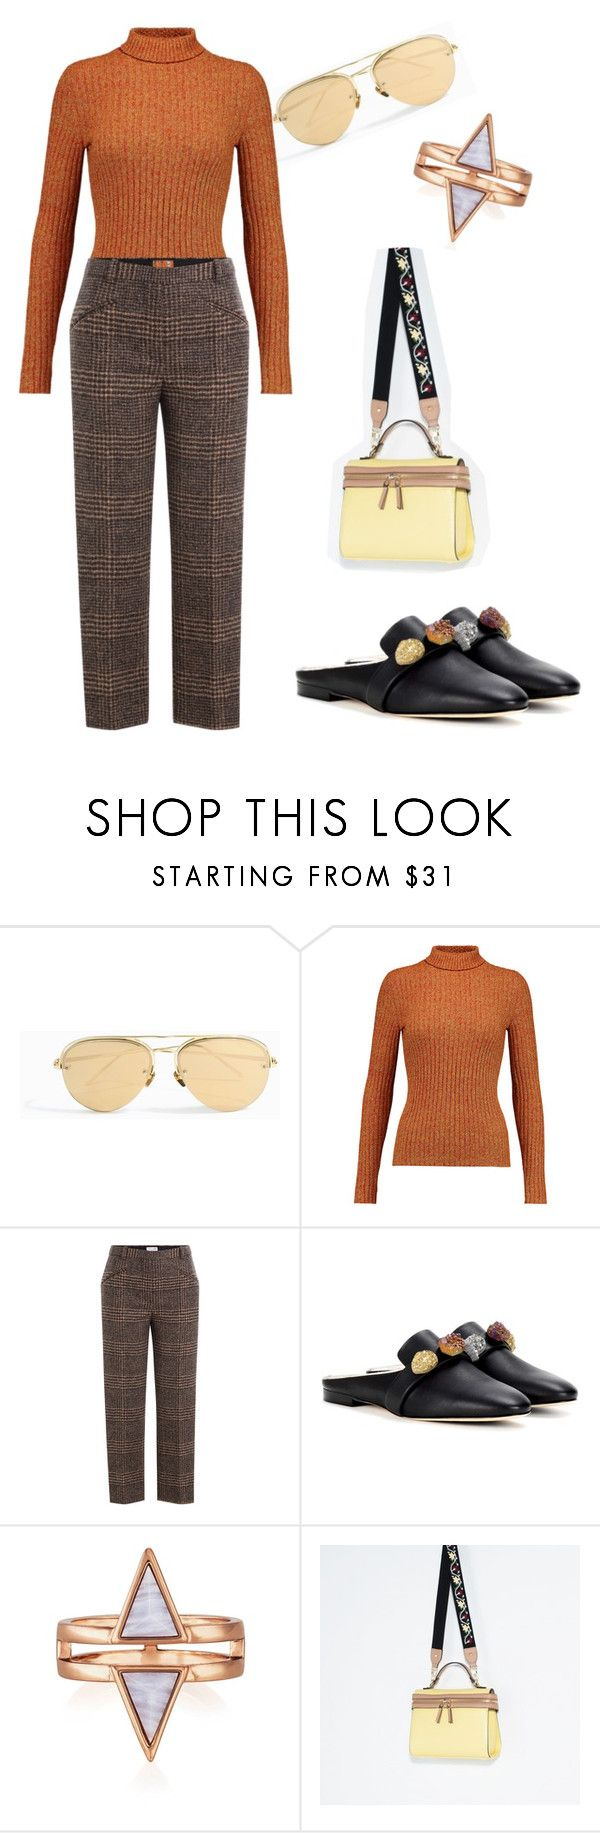 """""""Untitled #24"""" by d-ice on Polyvore featuring Linda Farrow, Just Cavalli, Sonia Rykiel and Christopher Kane"""